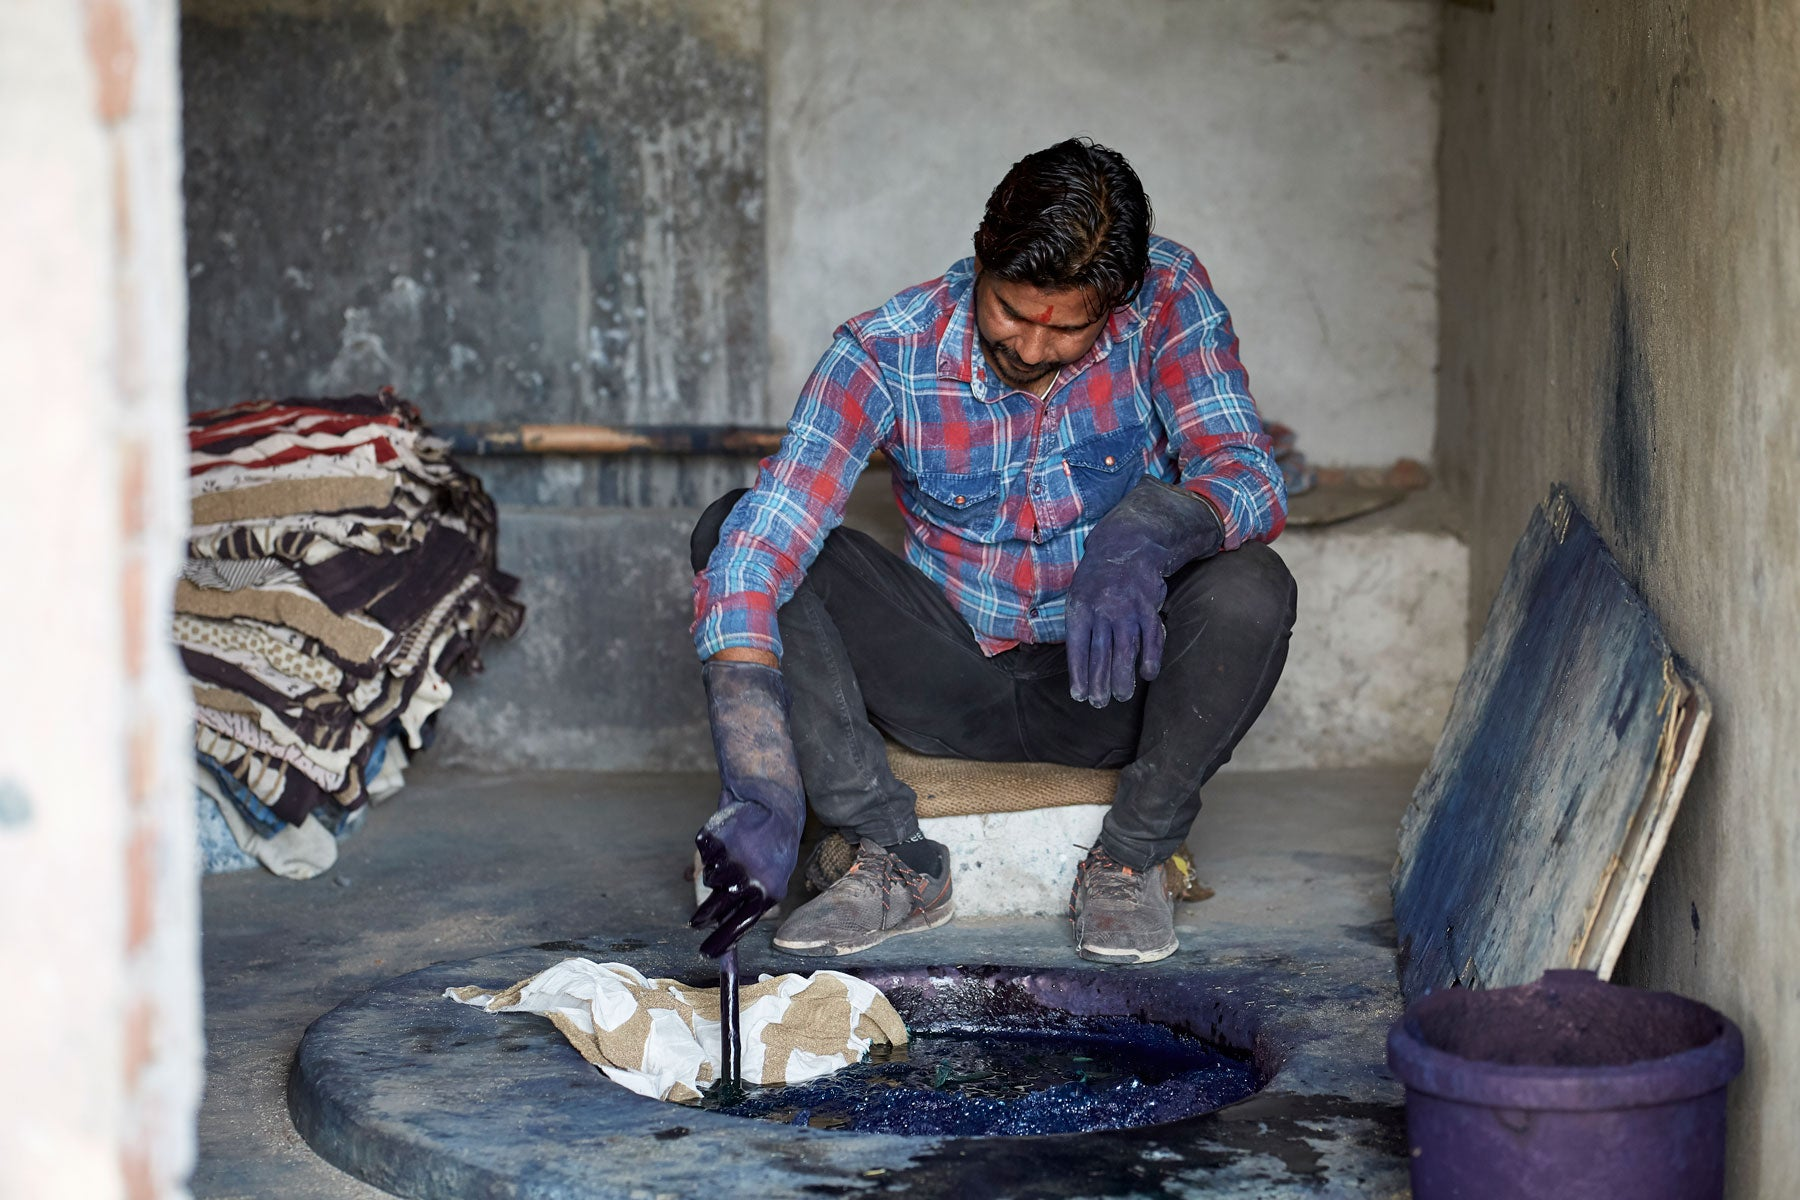 Dipping hand block printed textiles in the indigo vat